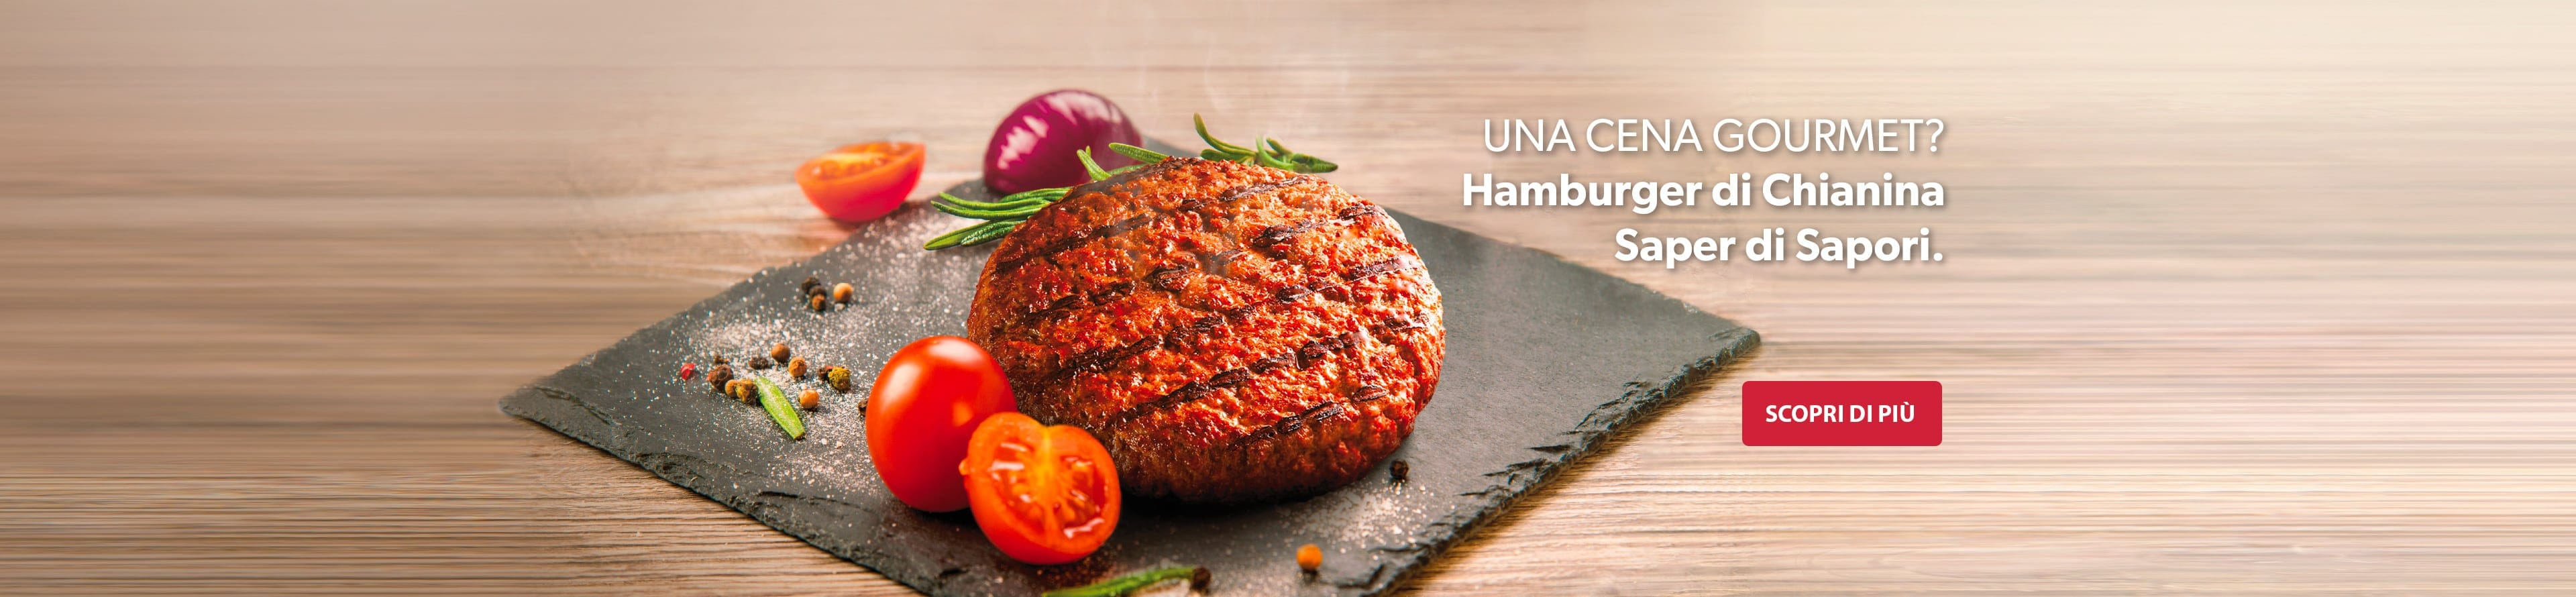 Slider Homepage 3840x890 Chianina